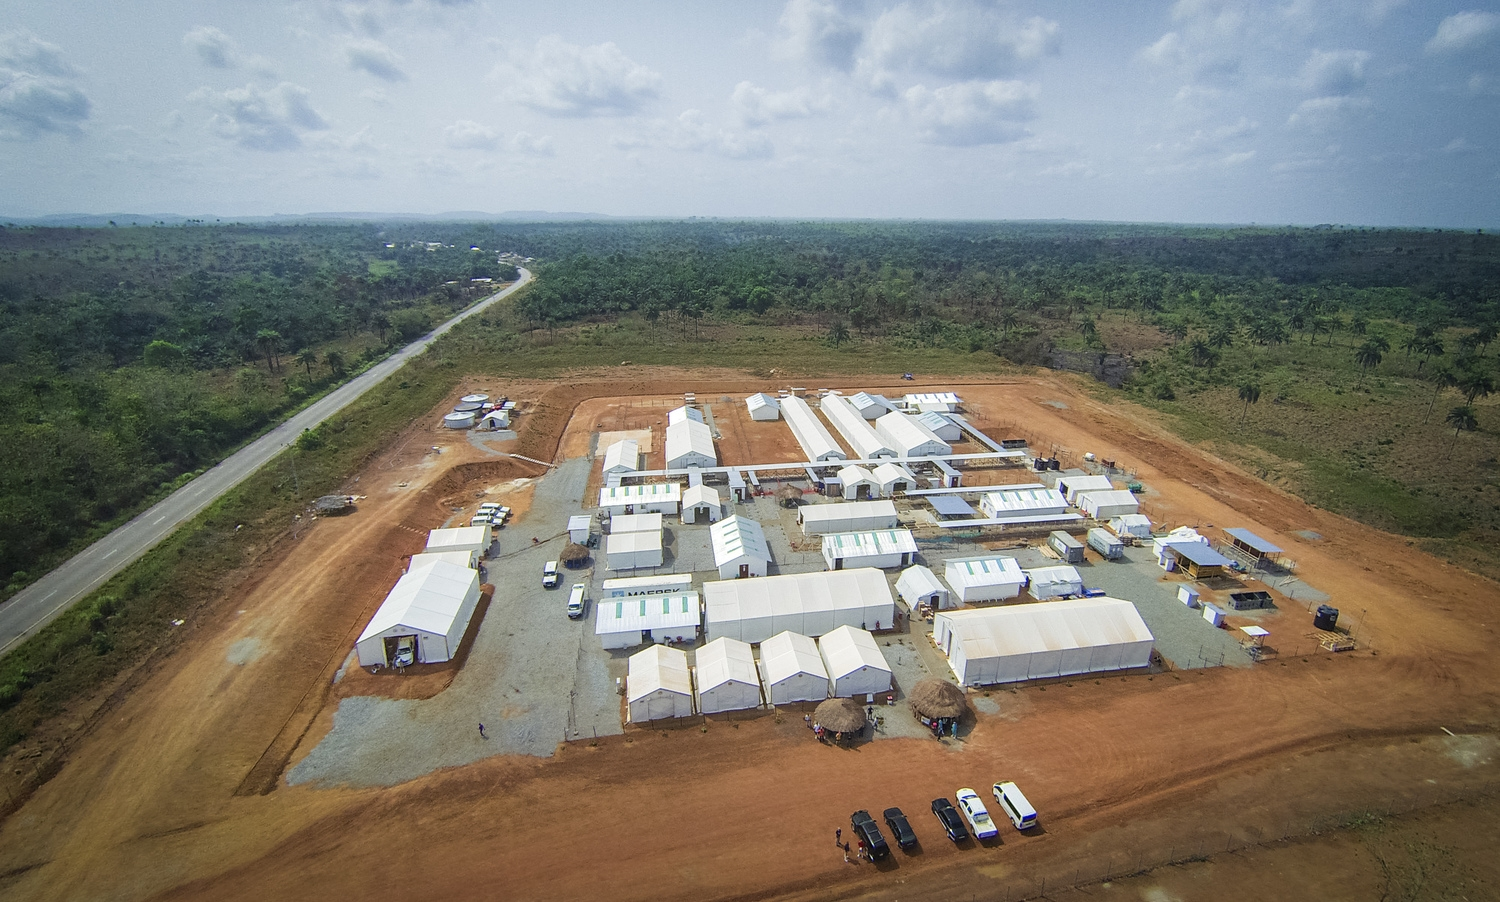 The International Medical Corps Ebola treatment centre in Mateneh, Sierra Leone. Photo by Michael Duff